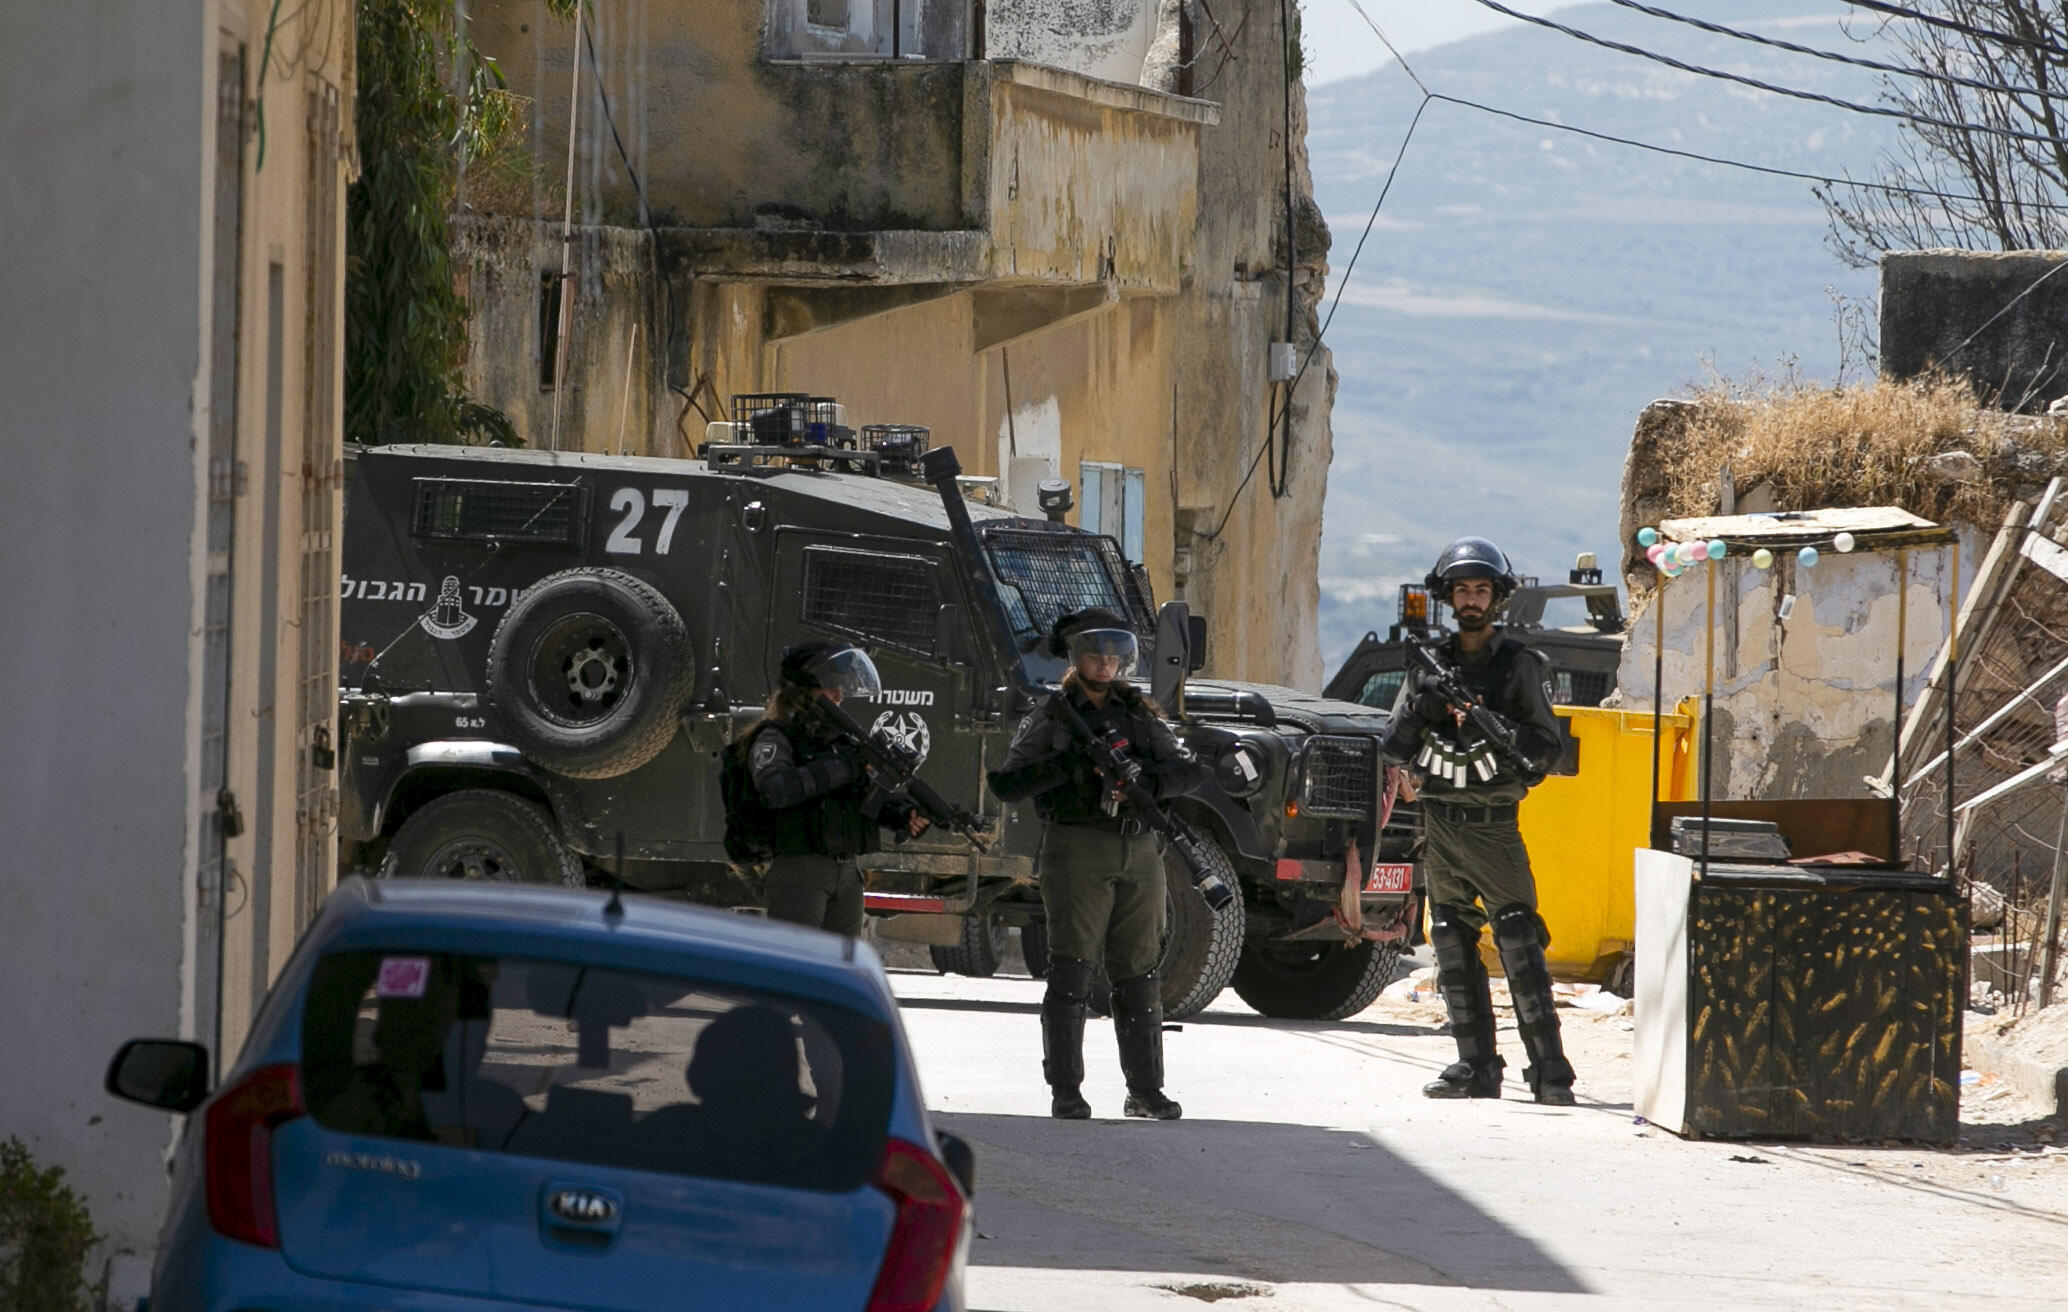 Israeli soldiers hunt for the Palestinian stonethrower believed to be responsible for the death of a comrade during an arrest operation in the village of Yaabad in the occupied West Bank